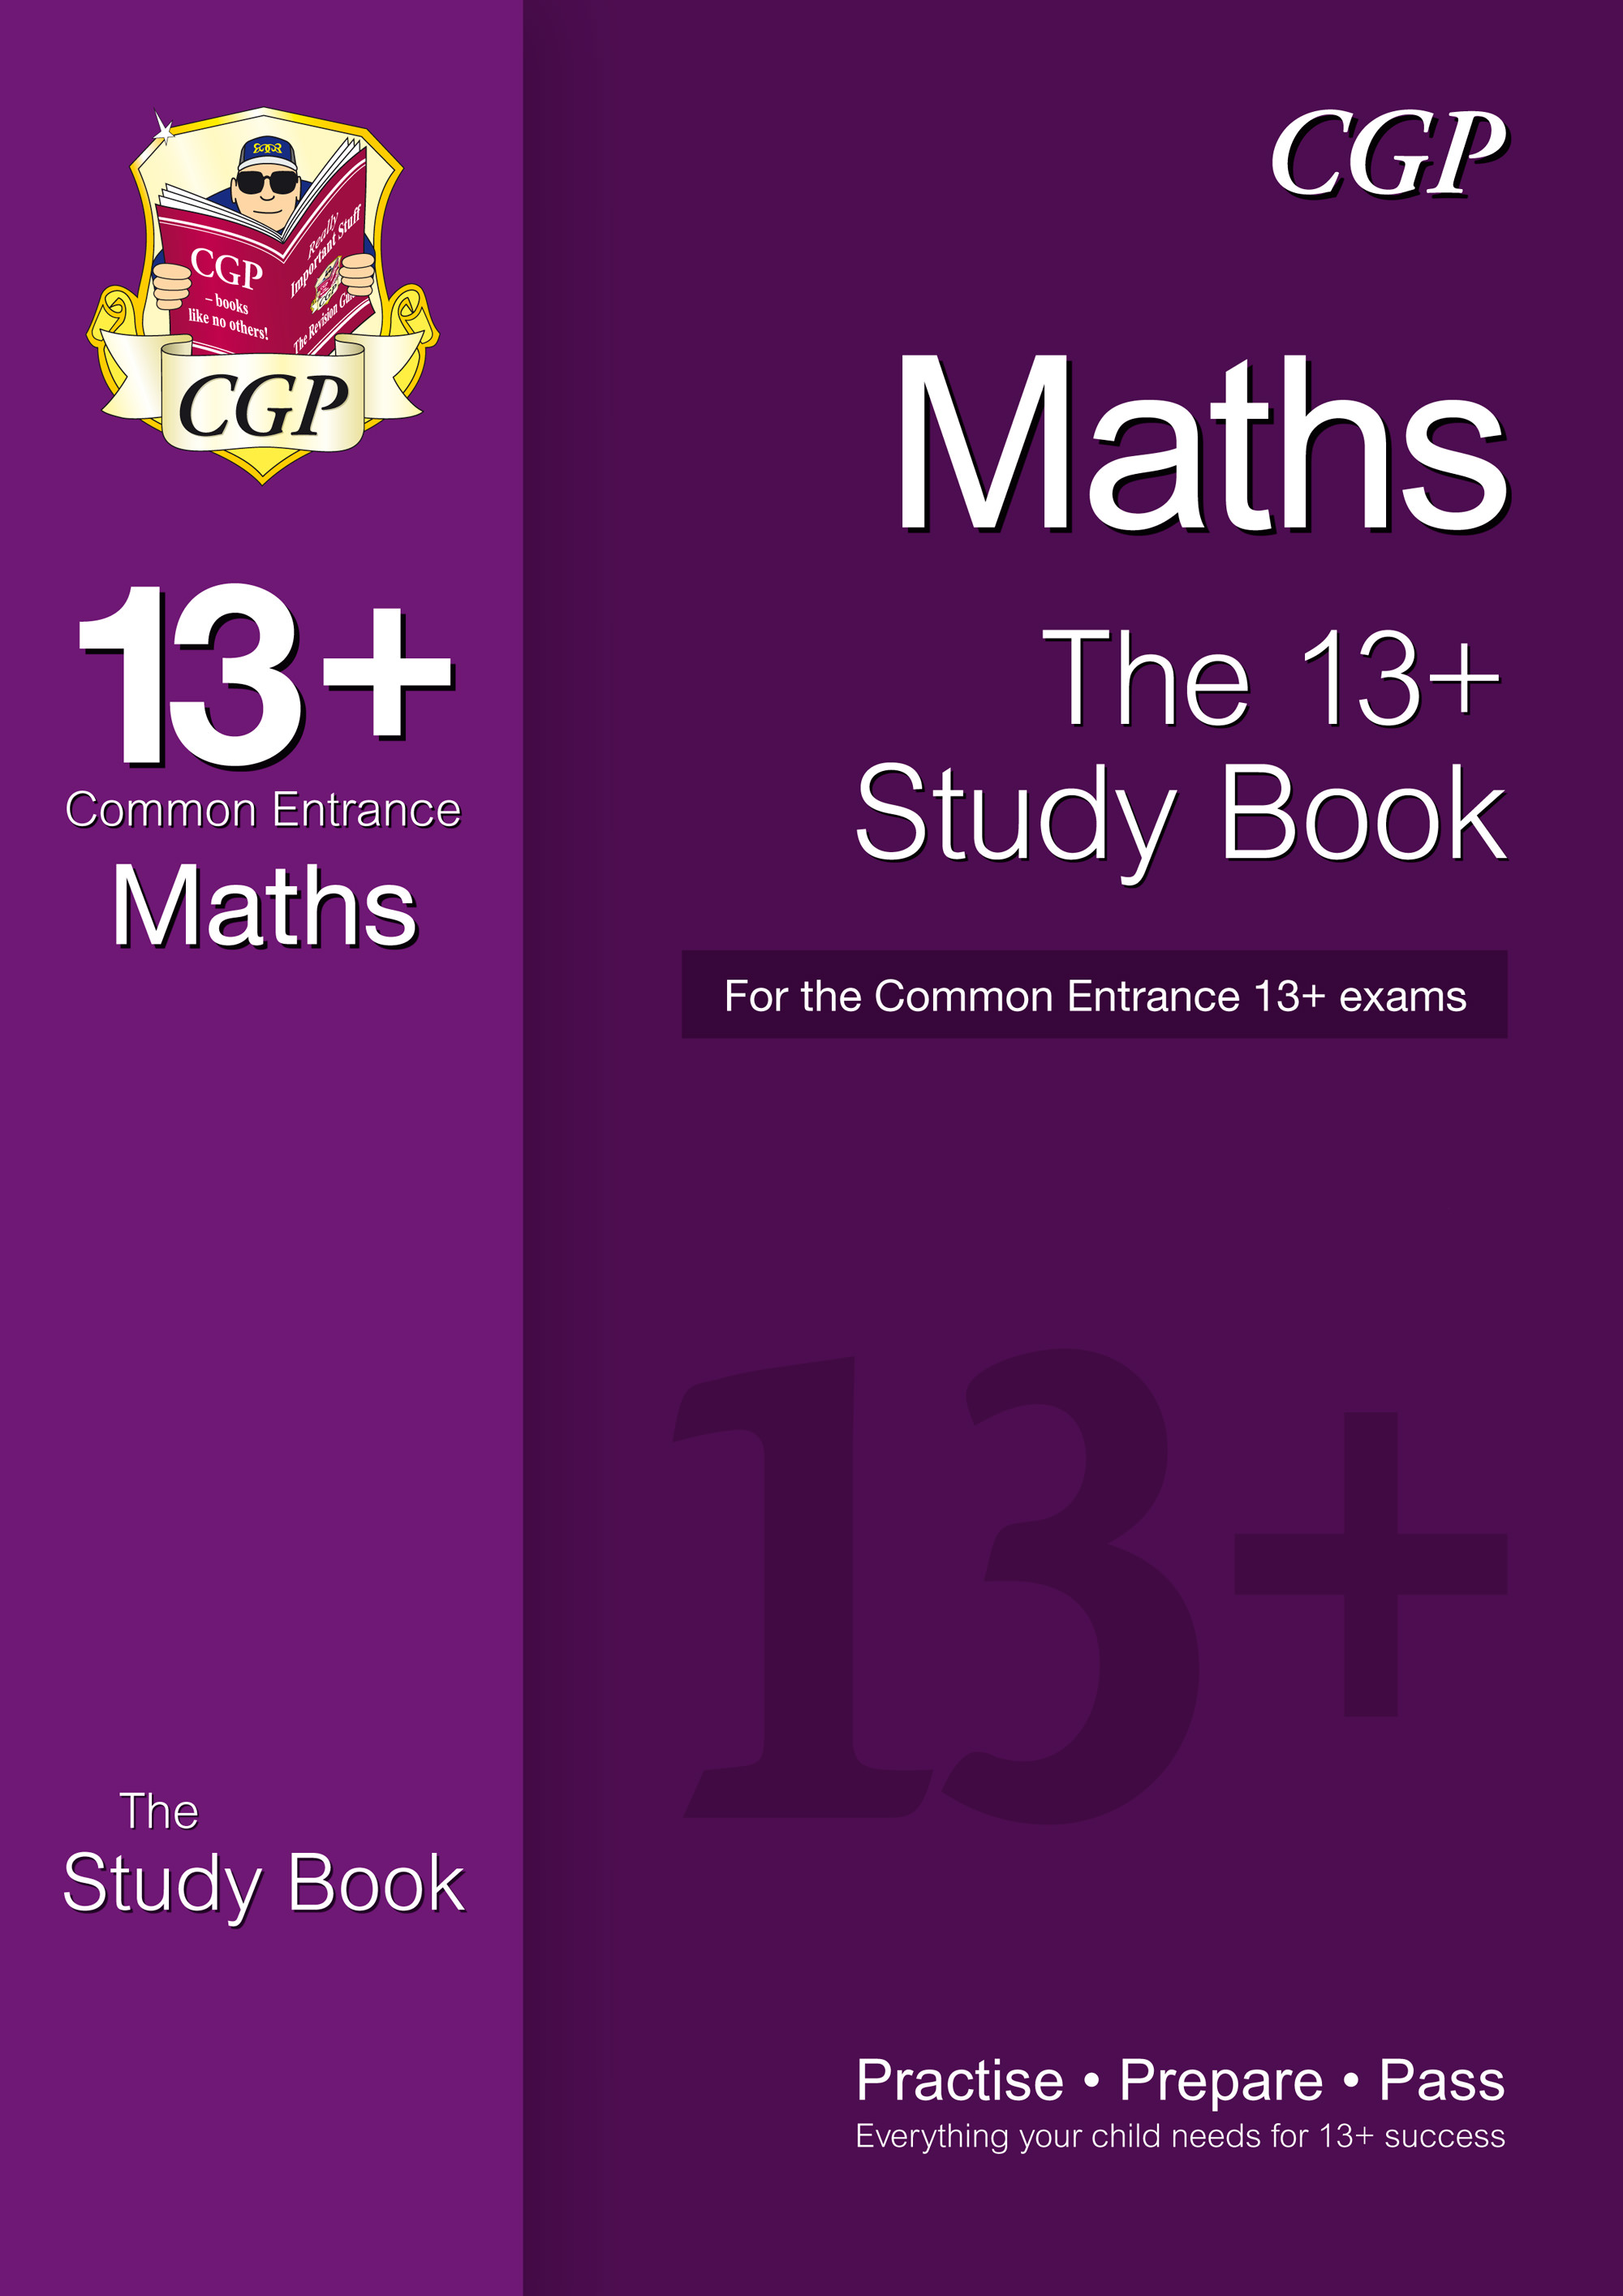 MIRT3 - New 13+ Maths Study Book for the Common Entrance Exams